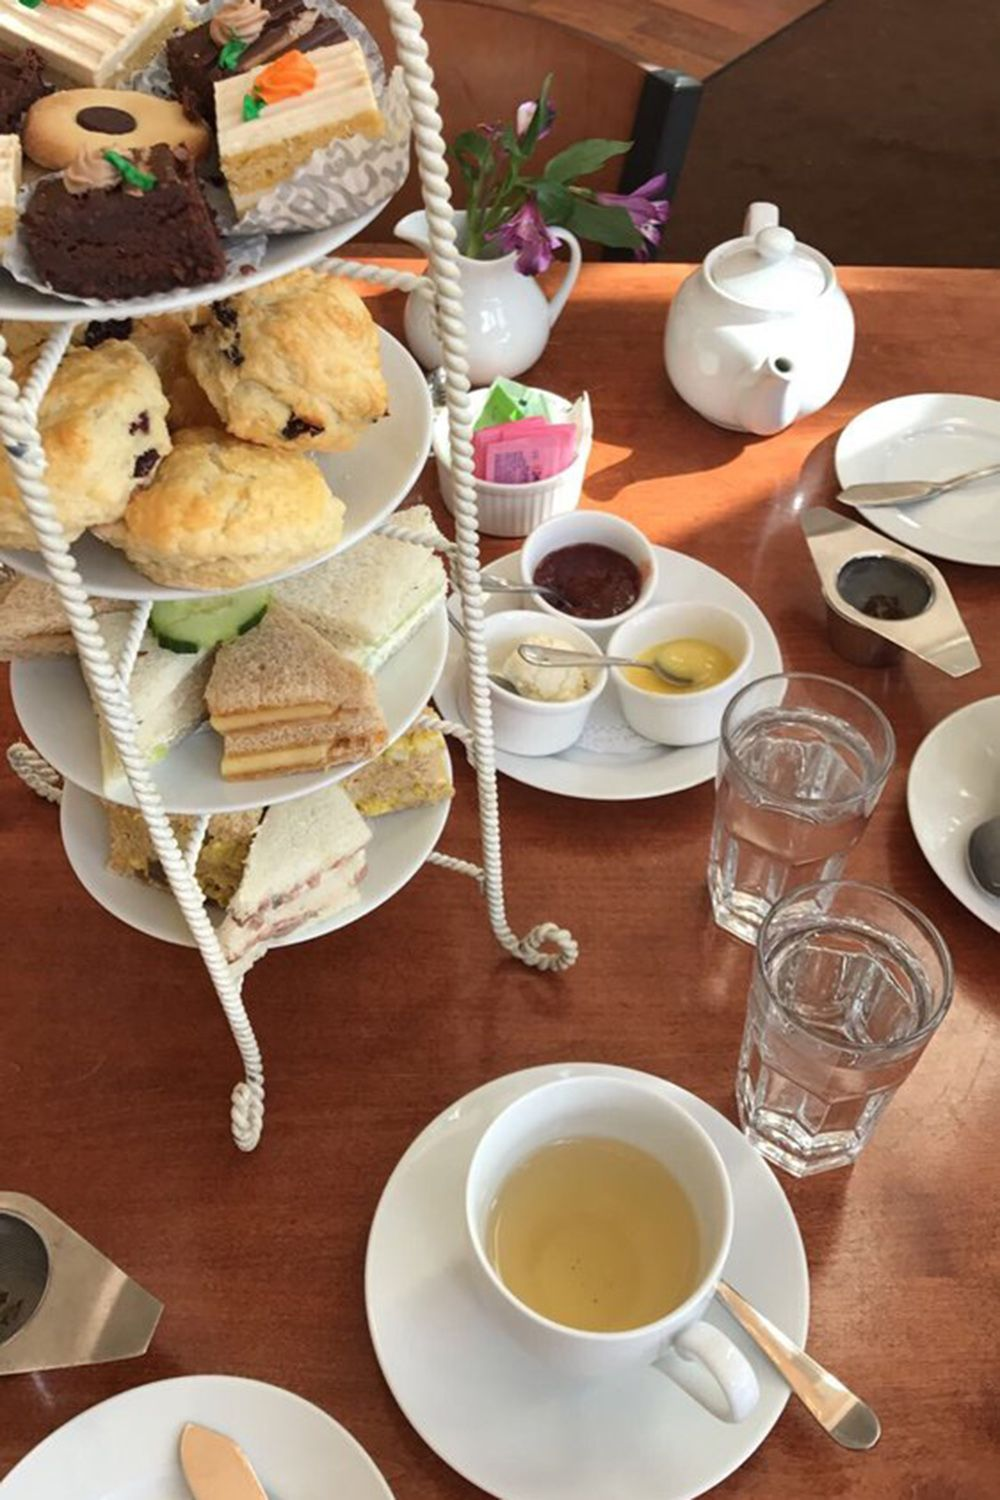 21 Best Places for Afternoon Tea - Great Tea Rooms to Have High Tea